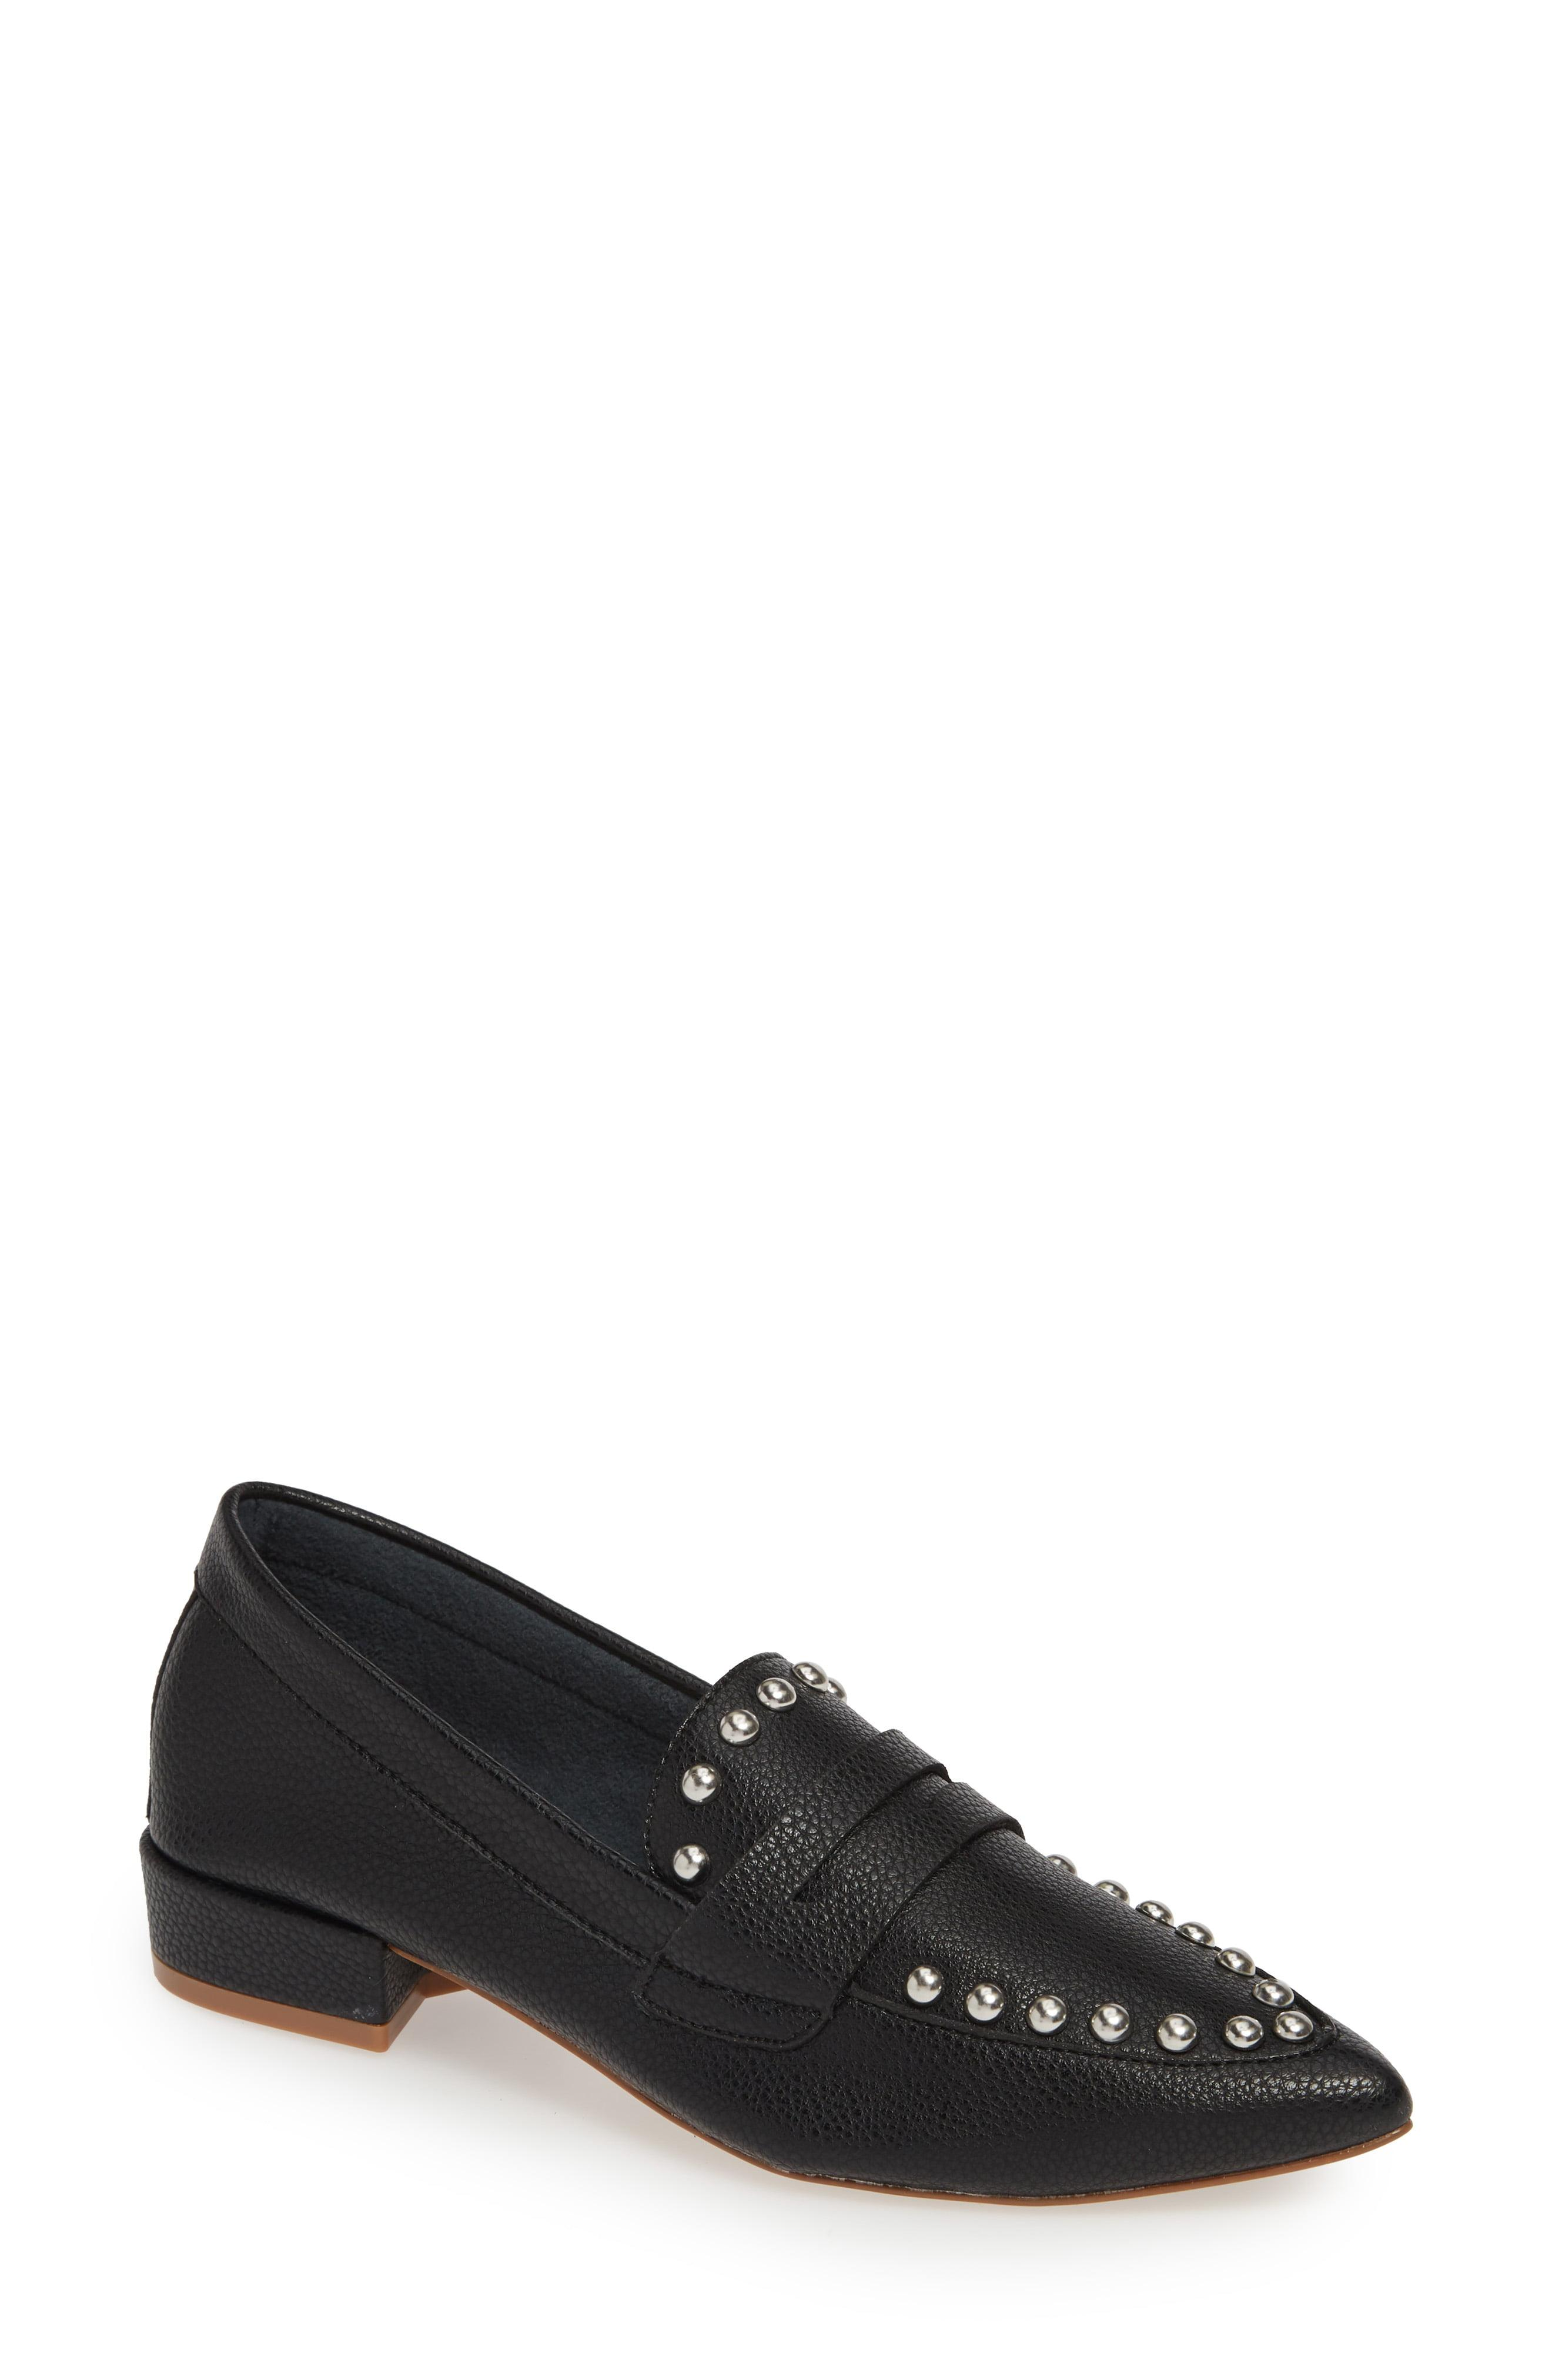 9e1f7174488 Lyst - Kensie Iroi Studded Loafer in Black